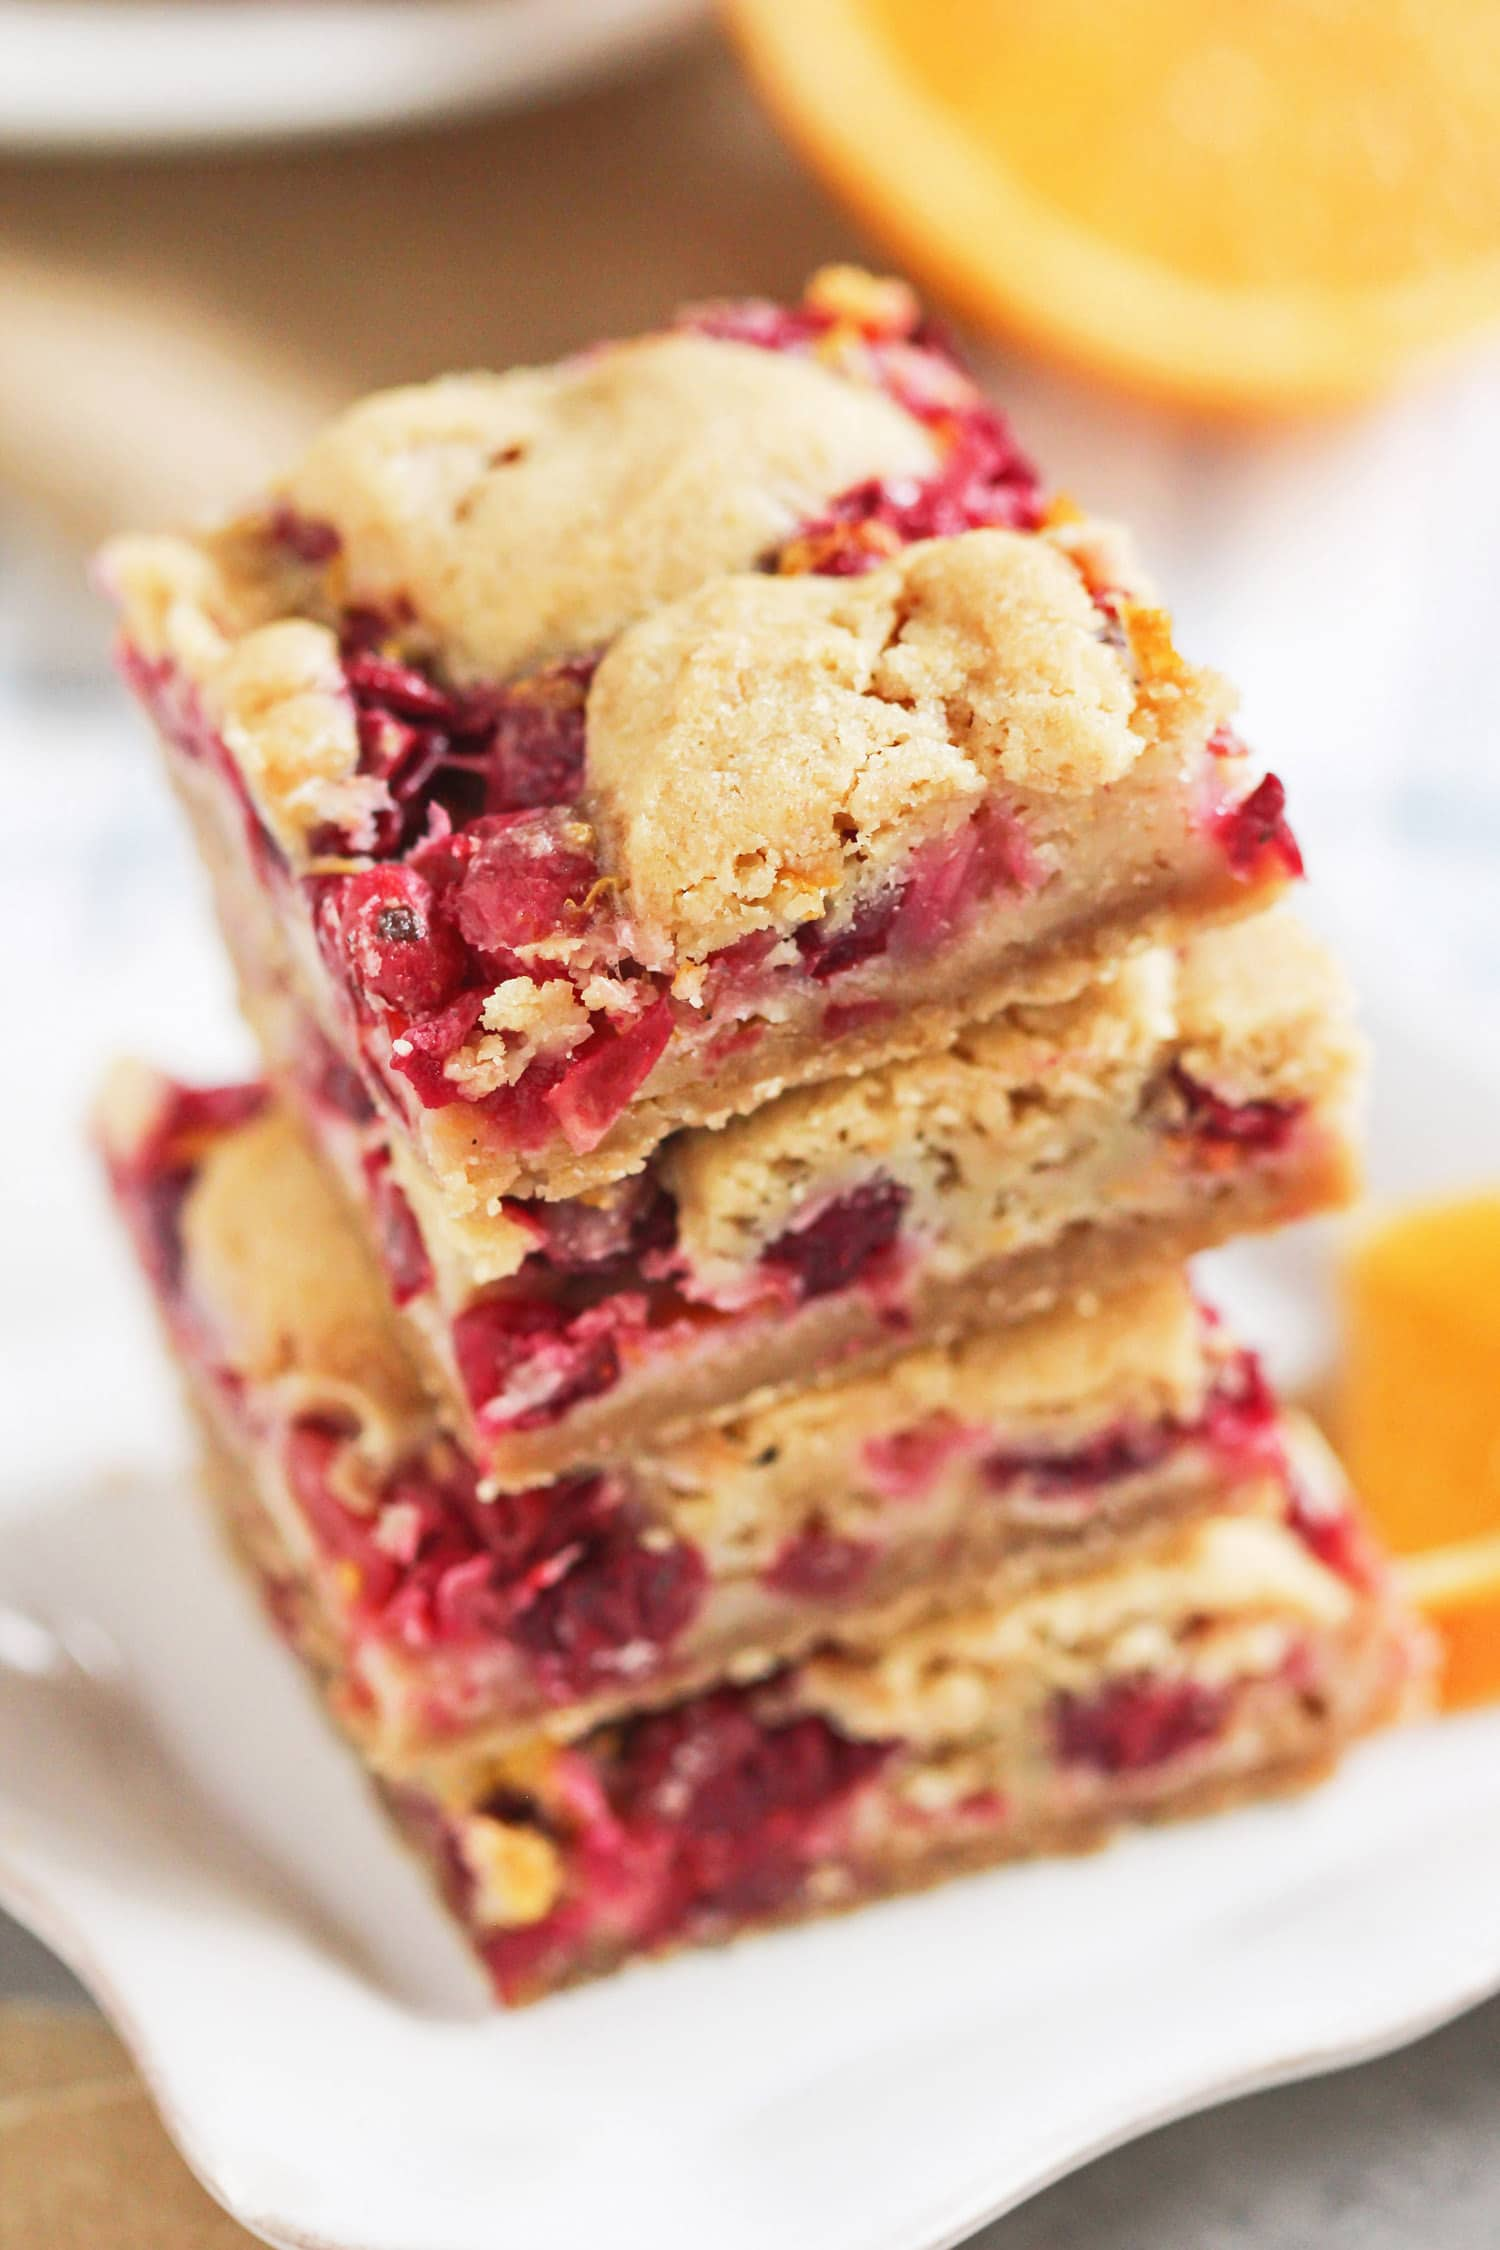 Guilt Free Cranberry Orange Bars – where blondies meet pie. These are seriously like a mix between sugar cookie blondies, a slice of cranberry pie, and the cranberry bliss bars at Starbucks. The perfect treat for the holidays. The kicker? They're low calorie, reduced fat, and lower sugar than your typical holiday desserts. Healthy Dessert Recipes at the Desserts With Benefits Blog (www.DessertsWithBenefits.com)